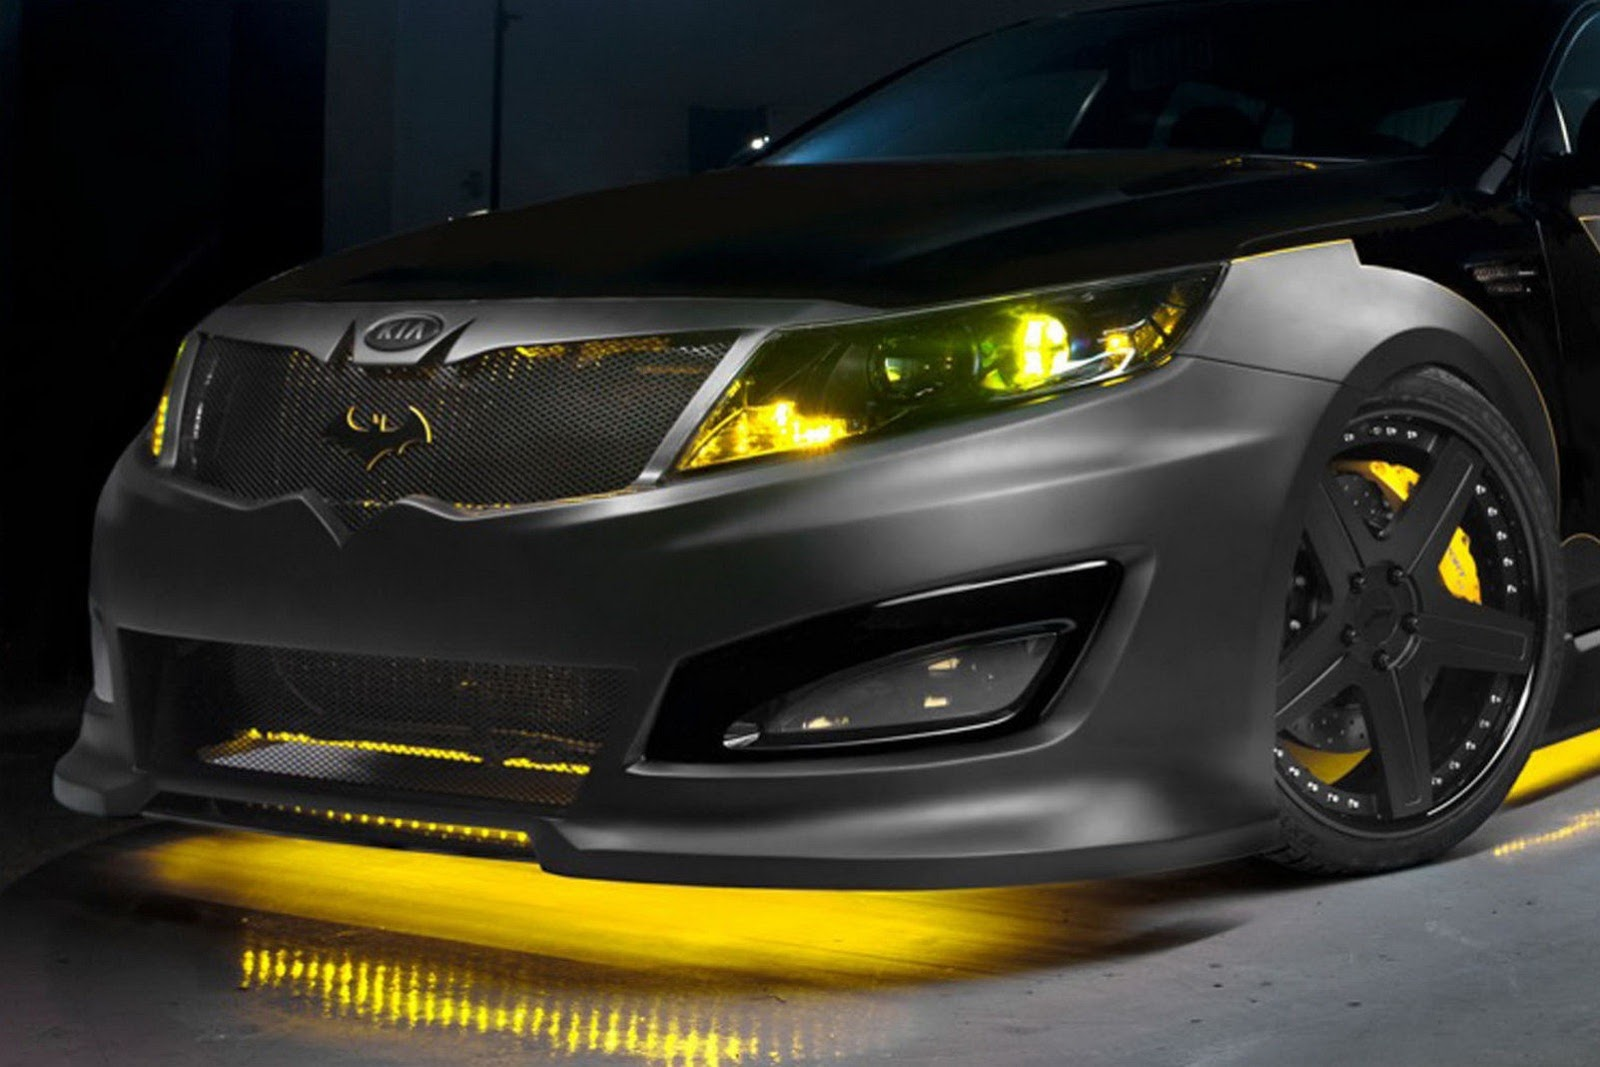 Kia Builds Batman Themed Optima Sedan To Battle Hunger